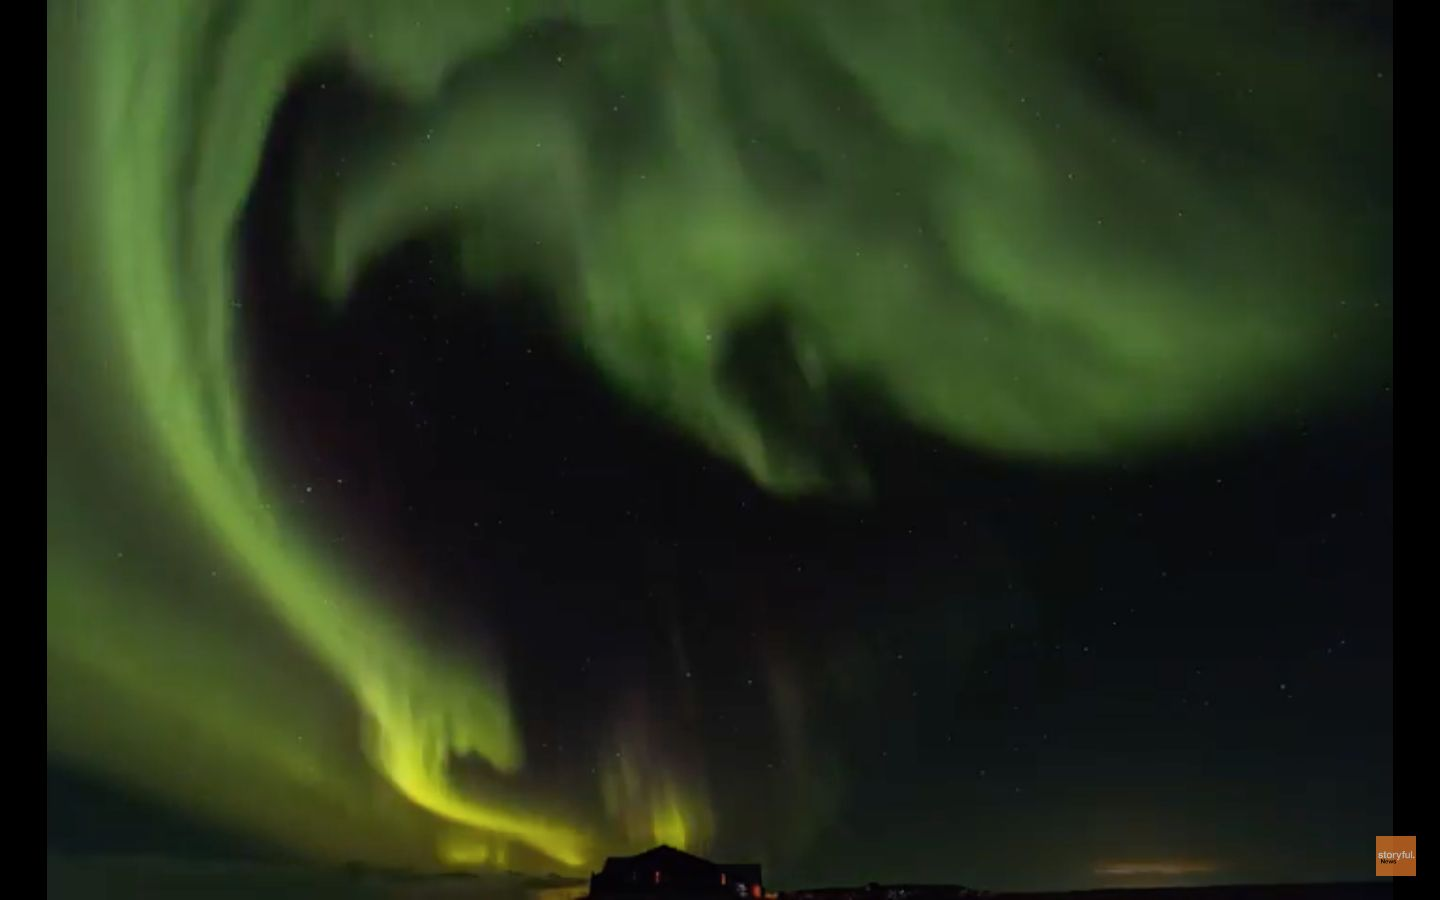 The northern lights are seen lighting up the skies over Iceland